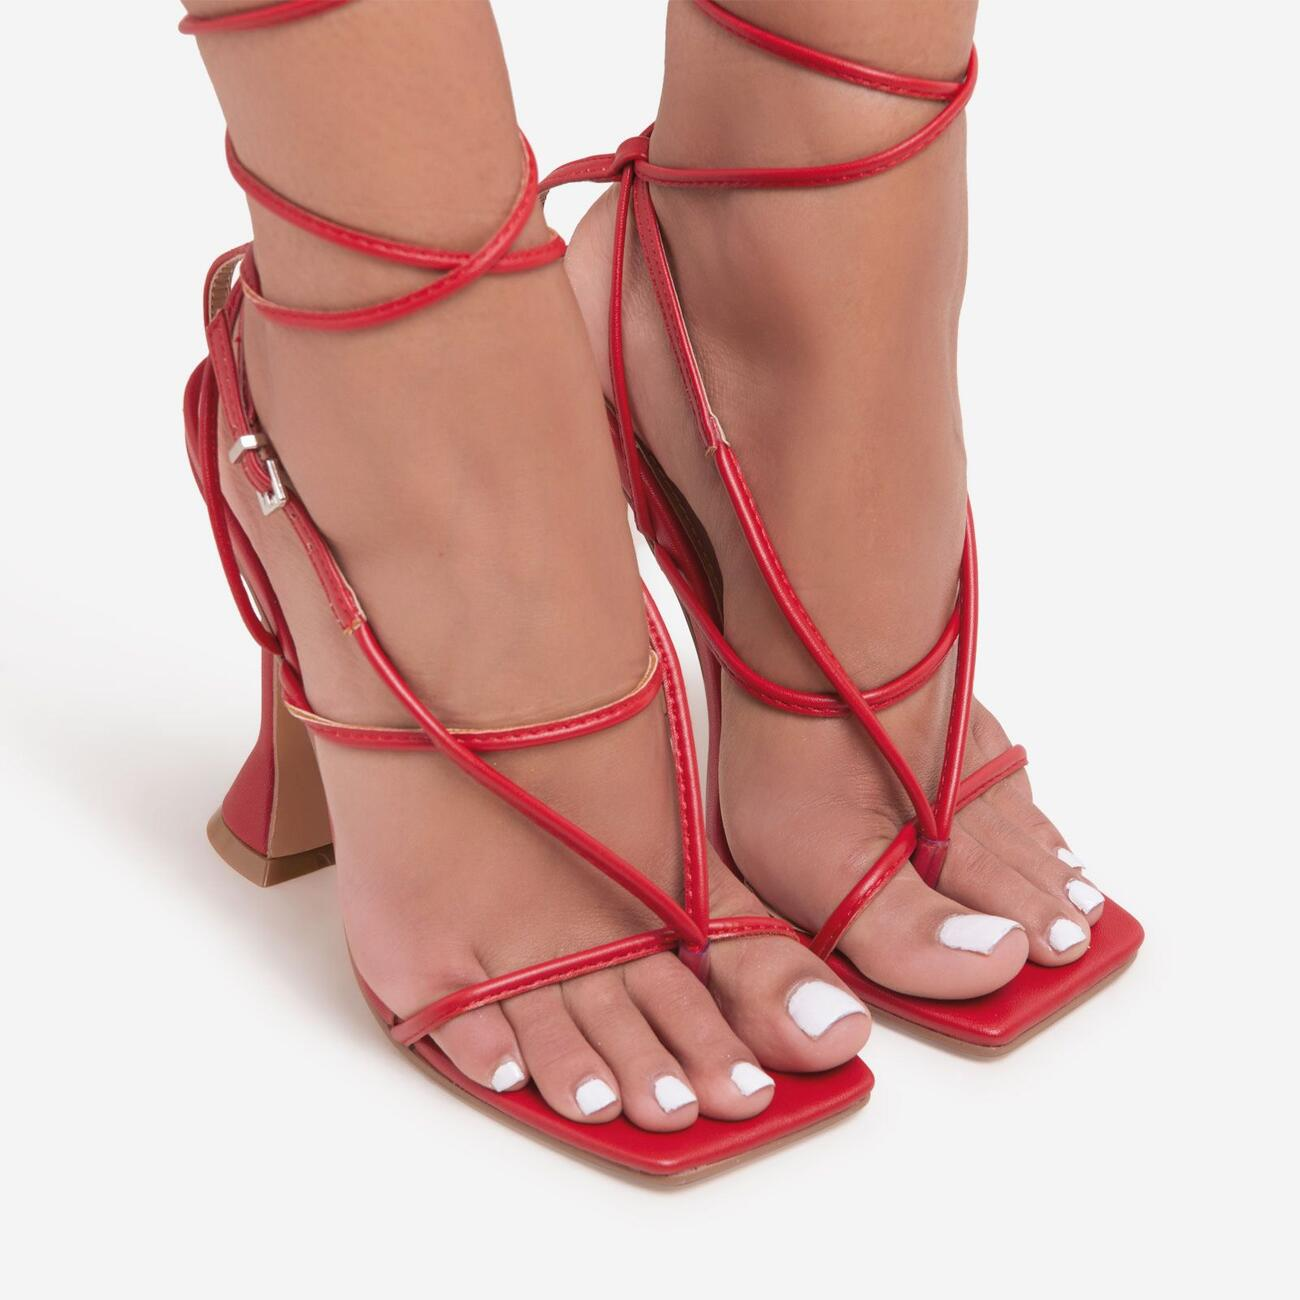 My-Angels Lace Up Square Toe Pyramid Heel In Red Faux Leather Image 3